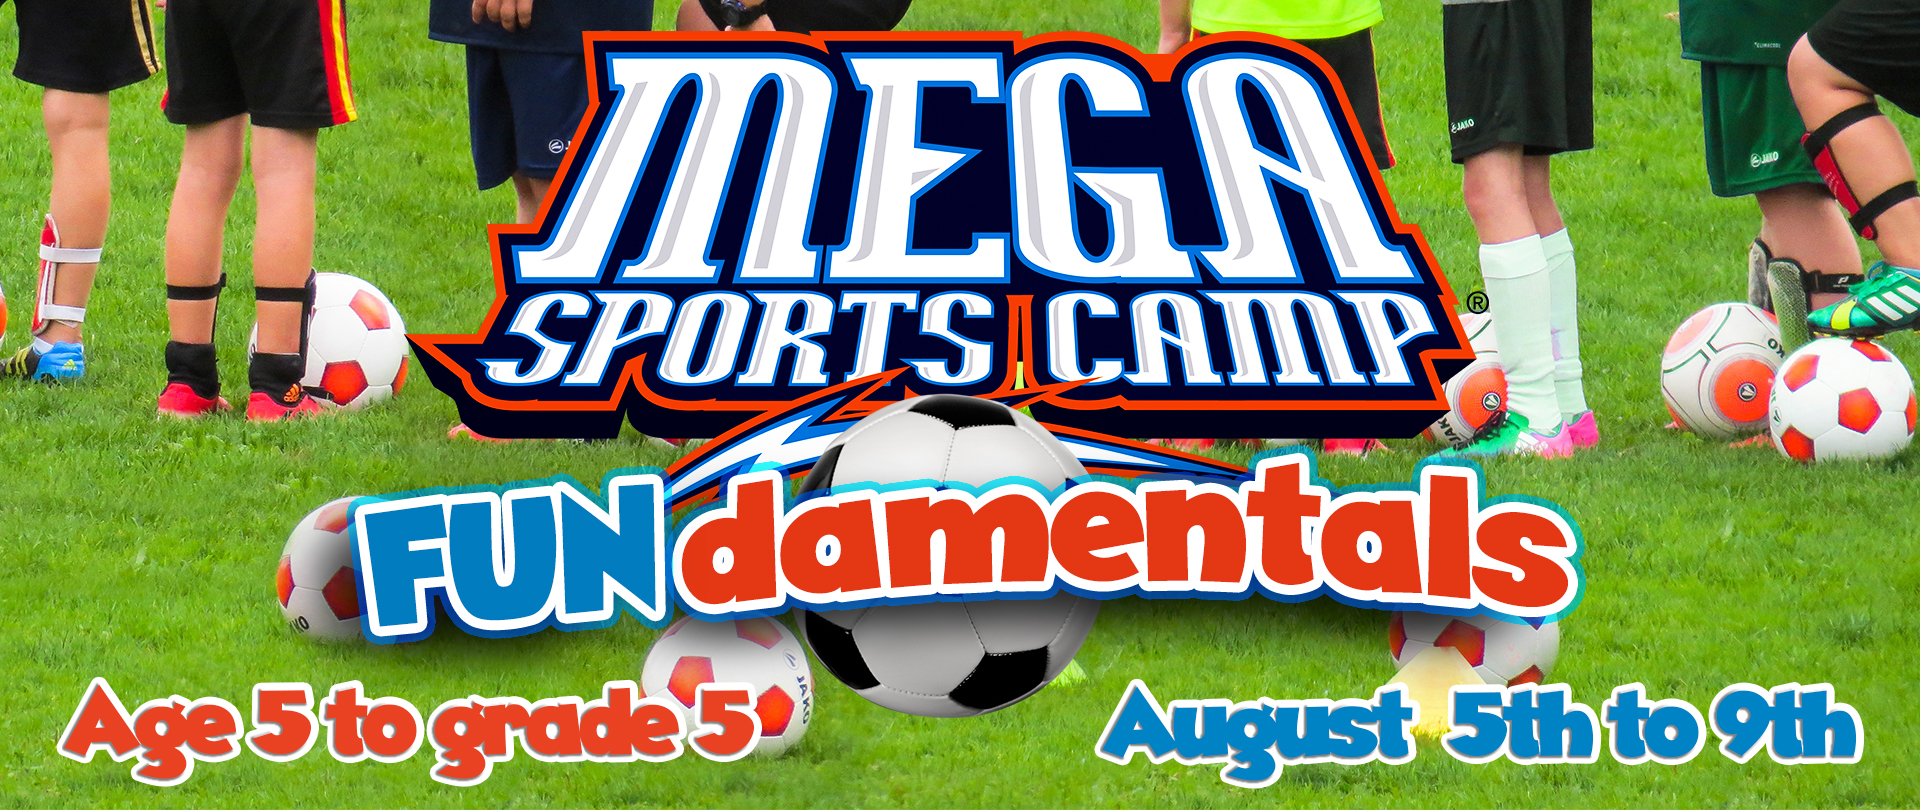 Mega Sports Camp Banner Look.jpg